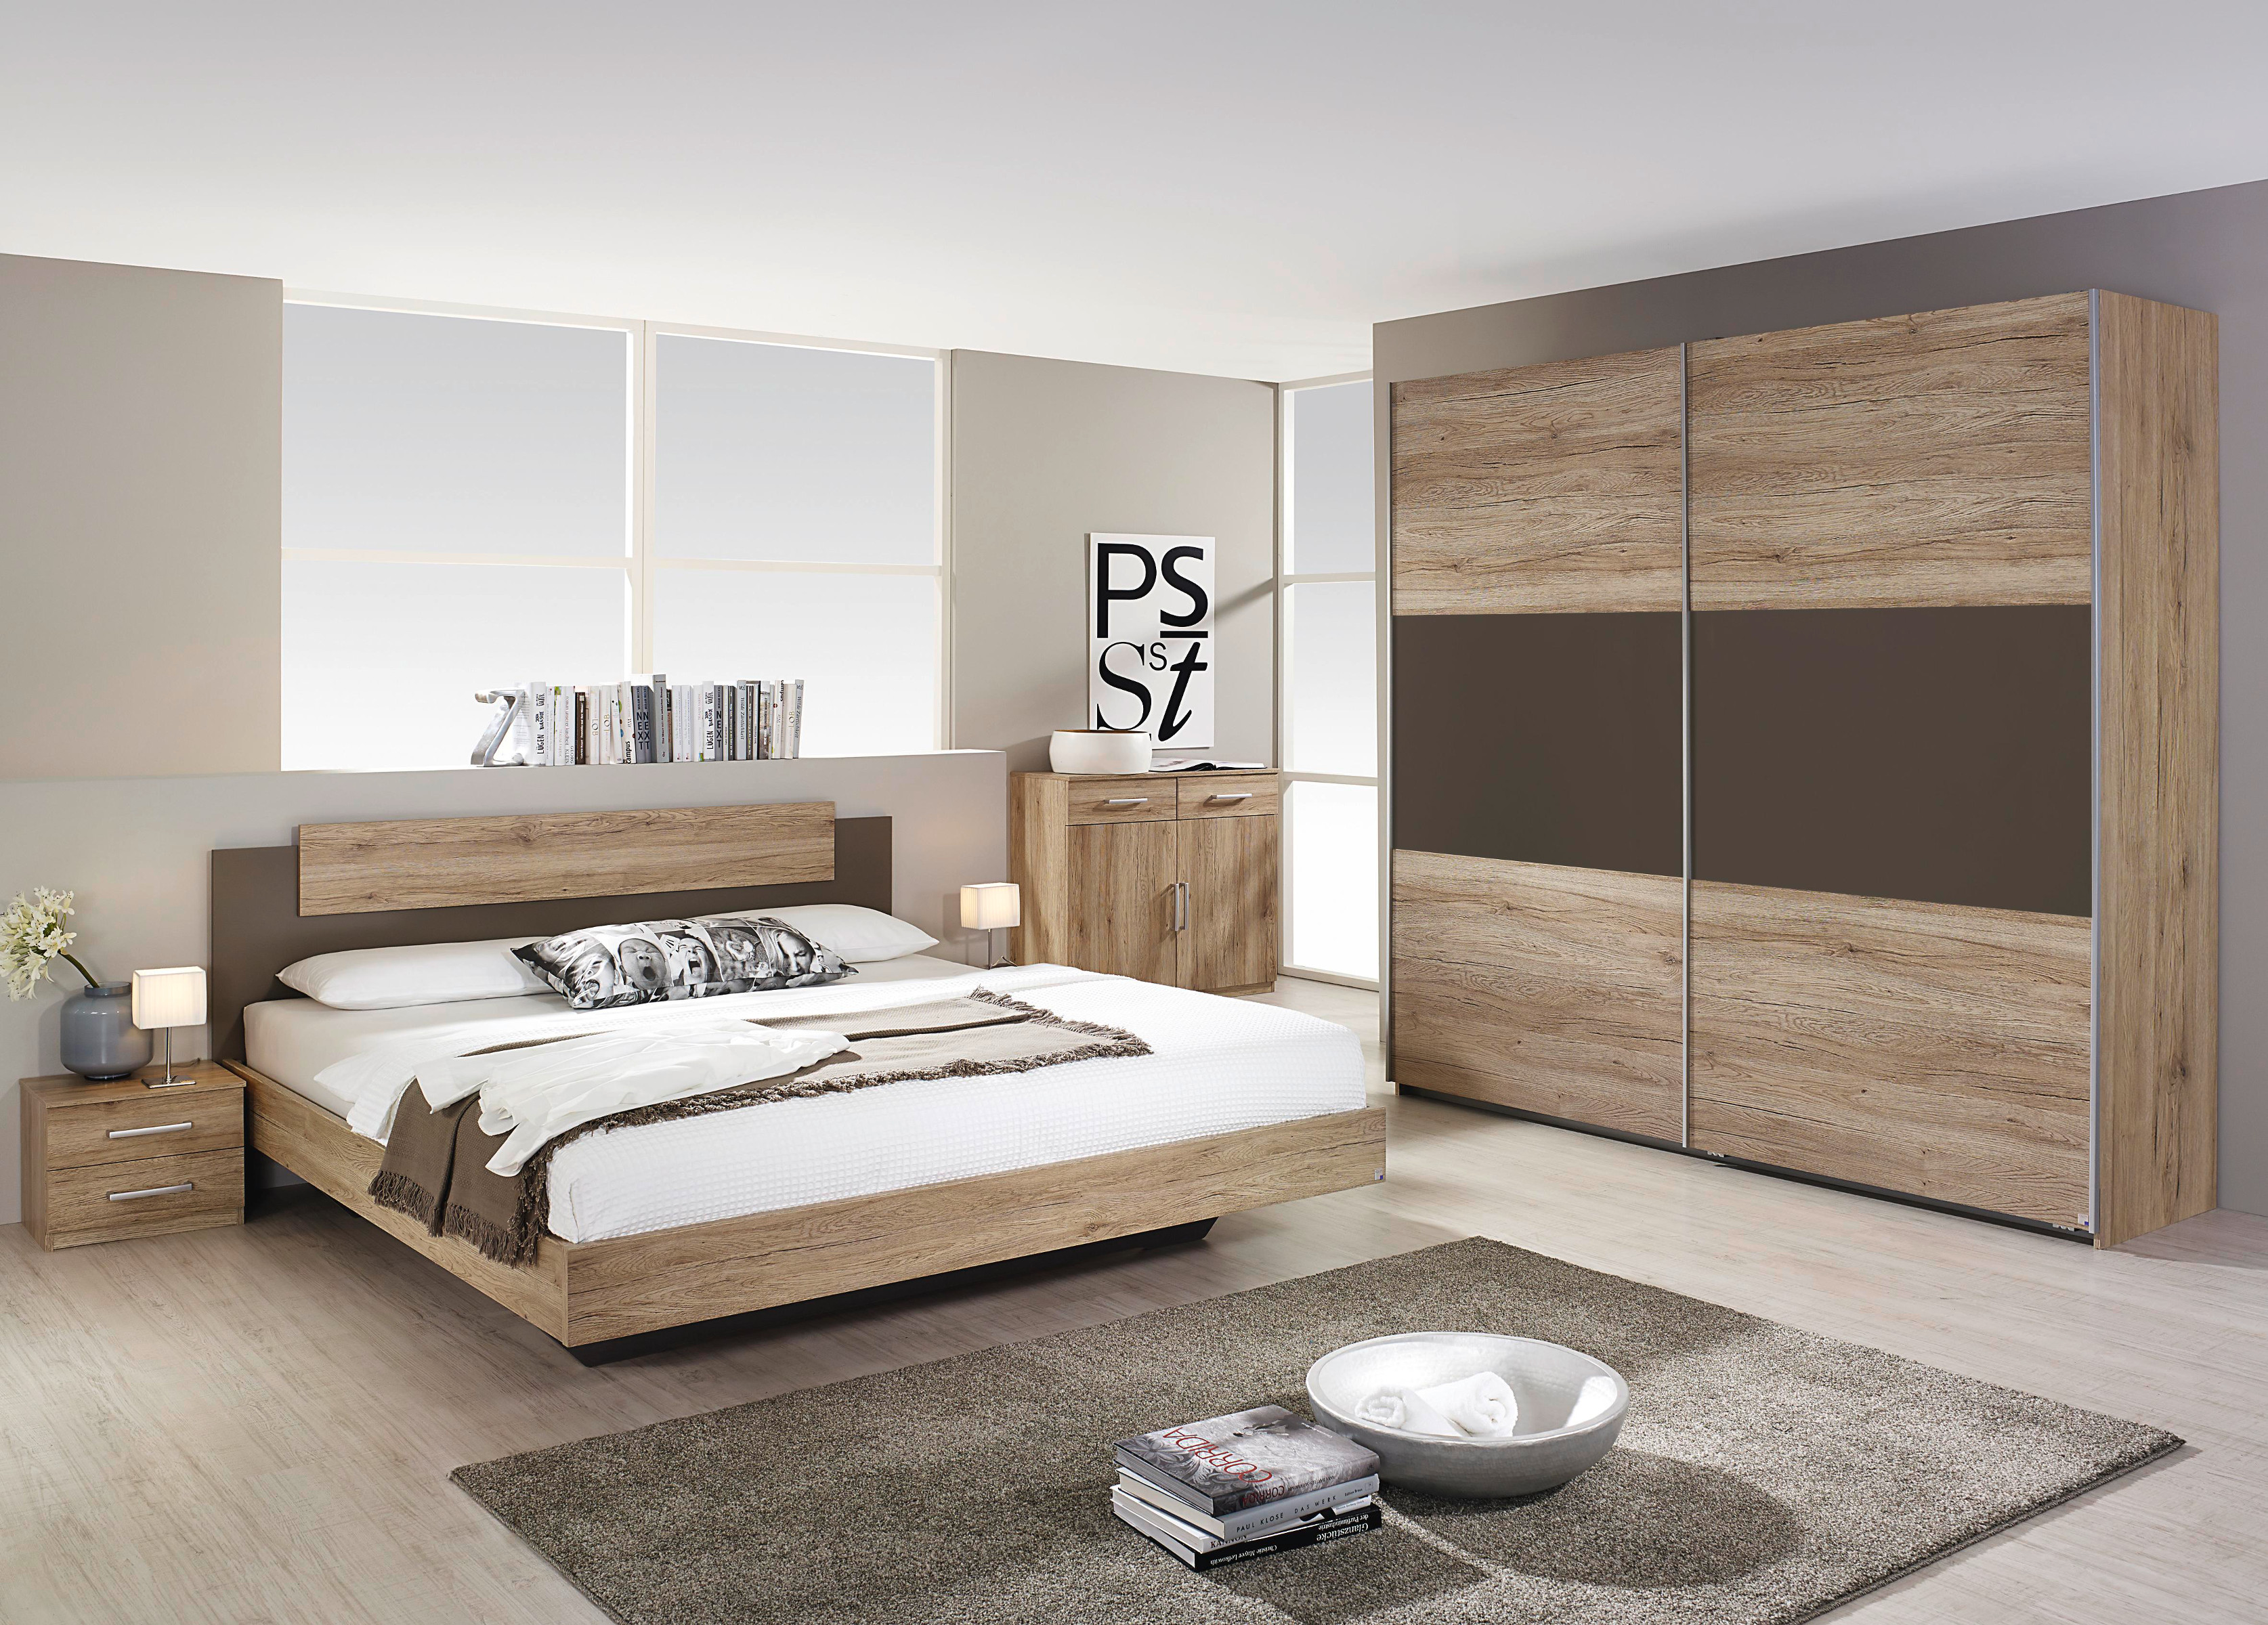 rauch schlafzimmer komplettangebot borba 4 teilig mit schwebet renschrank ebay. Black Bedroom Furniture Sets. Home Design Ideas